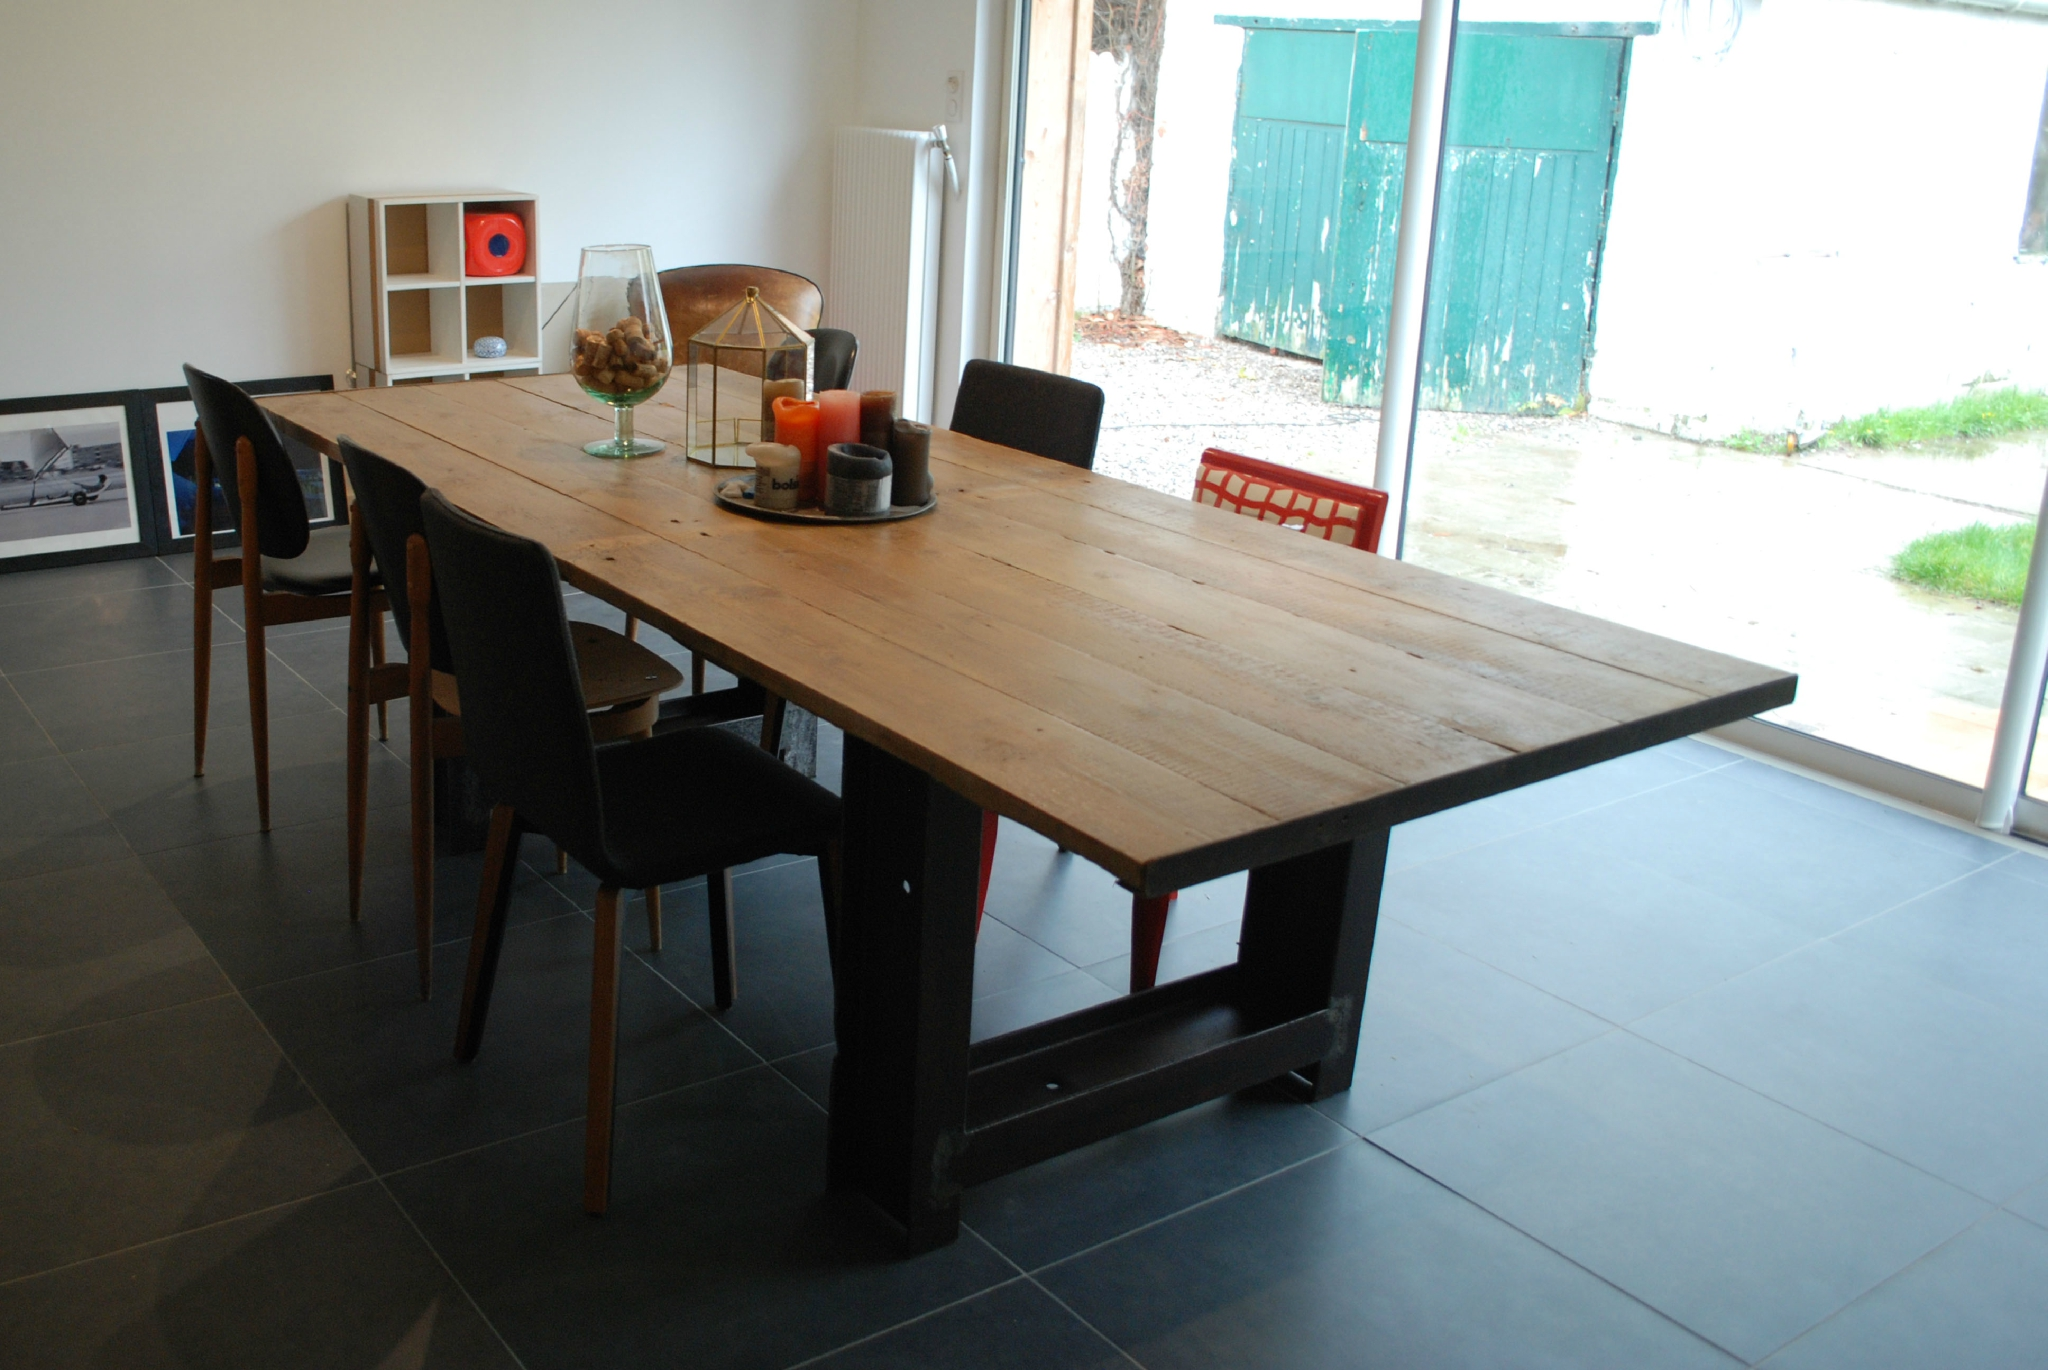 La table enfin les bricoleuzes - Creation a faire a la maison ...